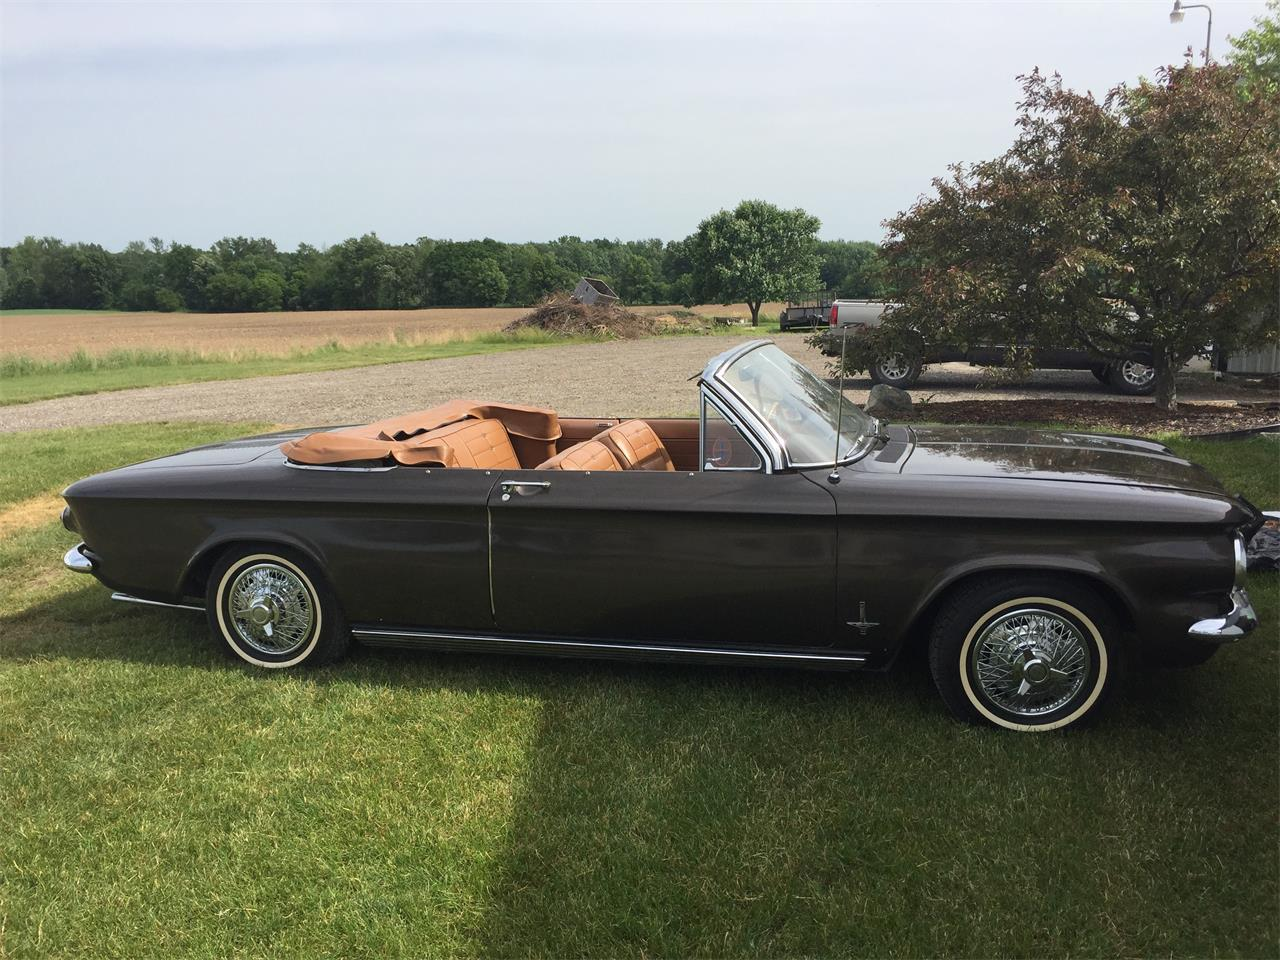 Large Picture of 1963 Chevrolet Corvair Monza located in Michigan - $11,500.00 Offered by a Private Seller - NNDG